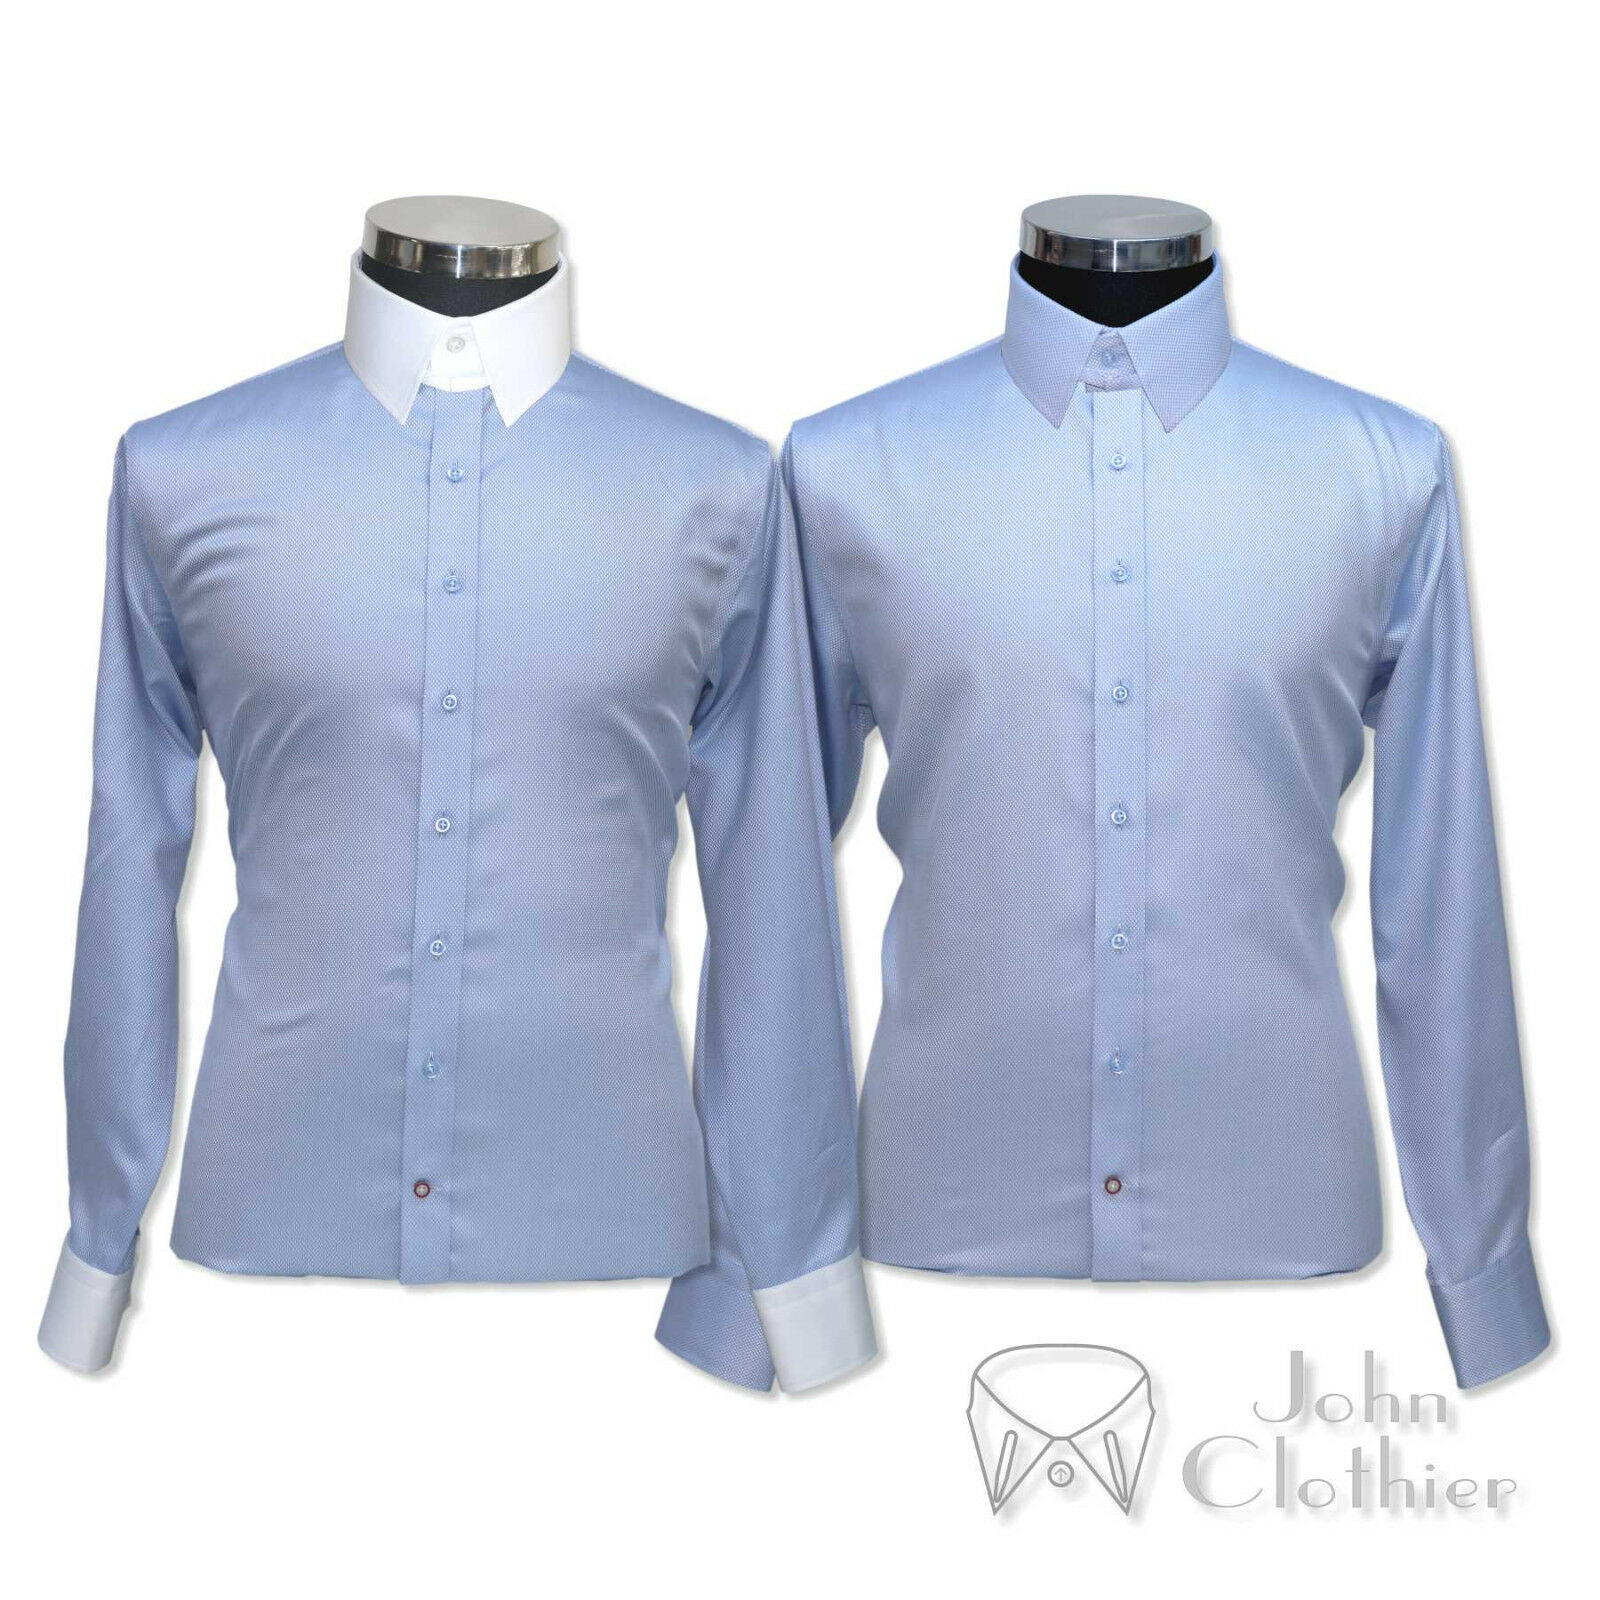 Pour des hommes Cotton Tab collar shirt Sky bleu diamond dobby Loop James Bond collar Gents